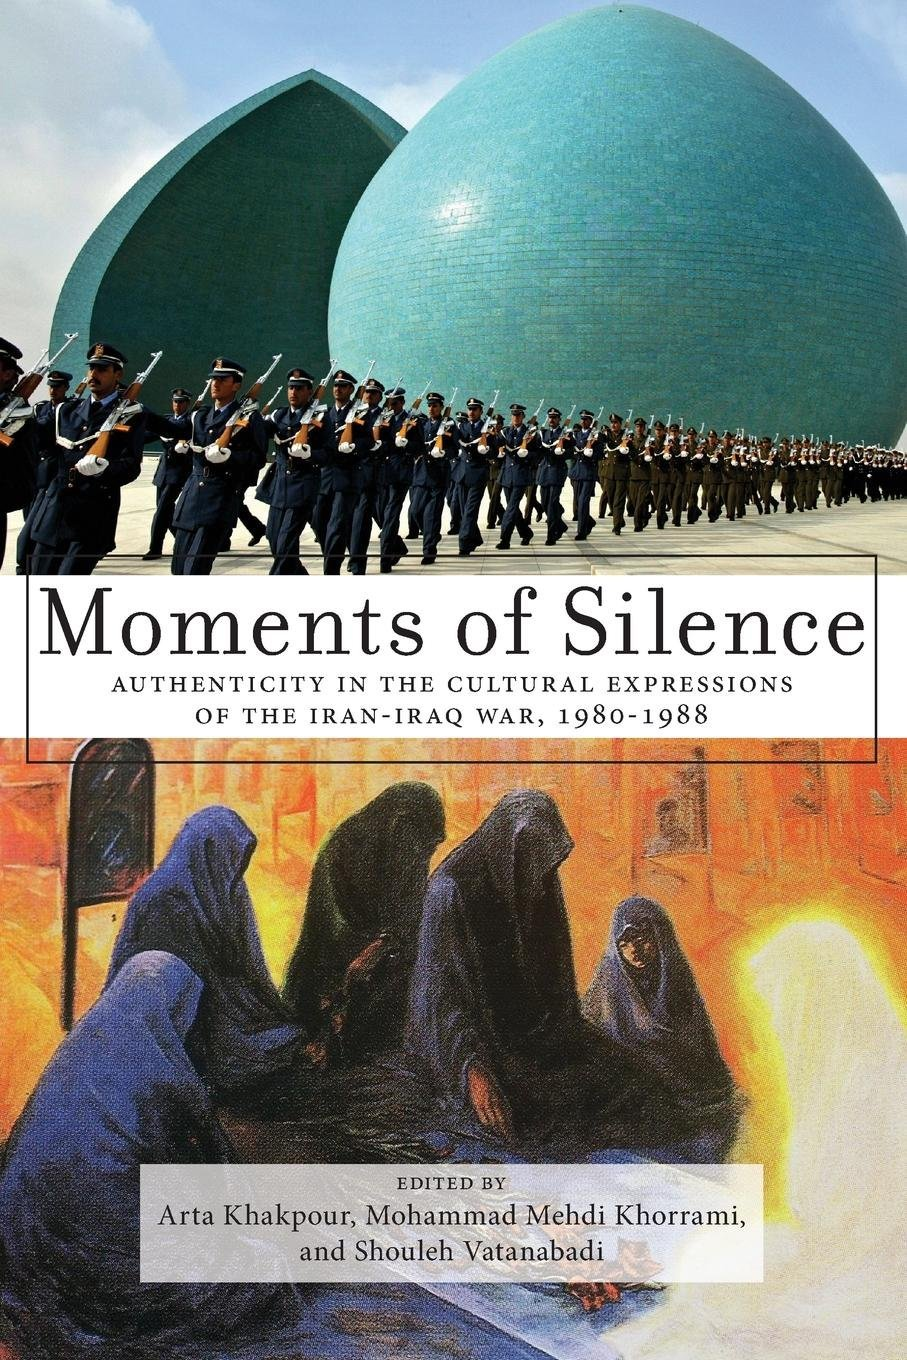 Read Online Moments of Silence: Authenticity in the Cultural Expressions of the Iran-Iraq War, 1980-1988 PDF